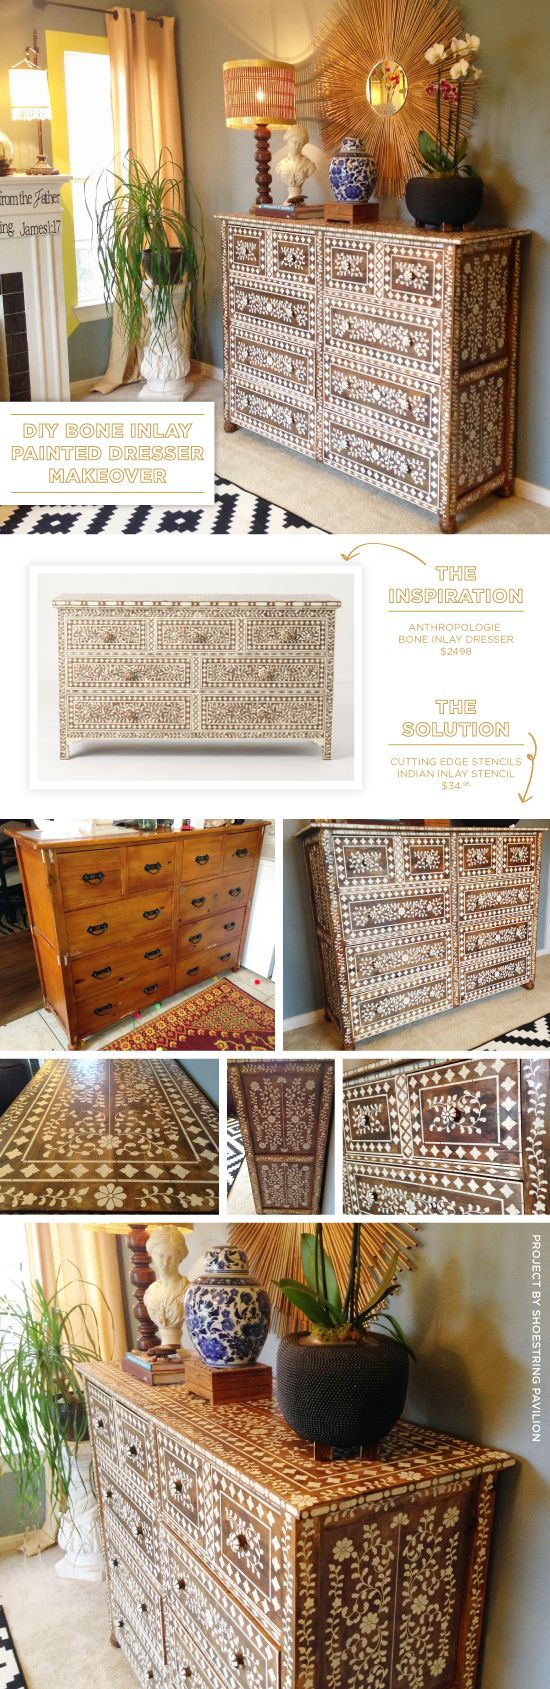 Cutting Edge Stencils shares a DIY Anthropogolie inspired bone inlay stenciled dresser using the Indian Inlay Stencil Kit.  http://www.cuttingedgestencils.com/indian-inlay-stencil-furniture.html?utm_source=JCG&utm_medium=Pinterest%20Comment&utm_campaign=Indian%20Inlay%20Furniture%20Stencil%20Kit%20